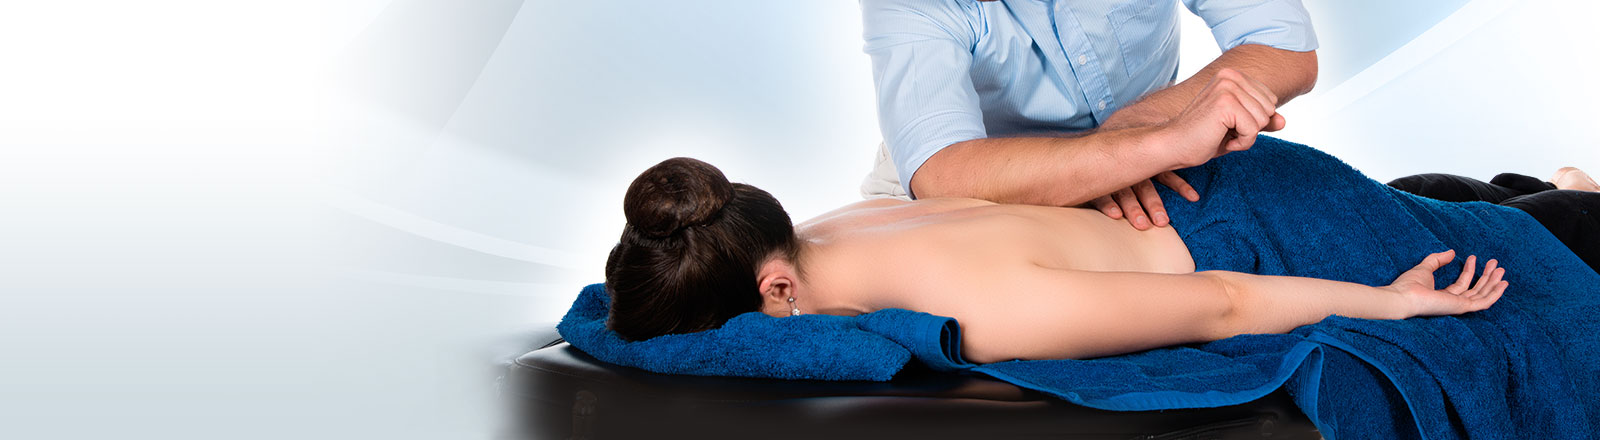 Therapeutic Massage at Absolute Health Clinic - Chiropractor in Arlington Heights